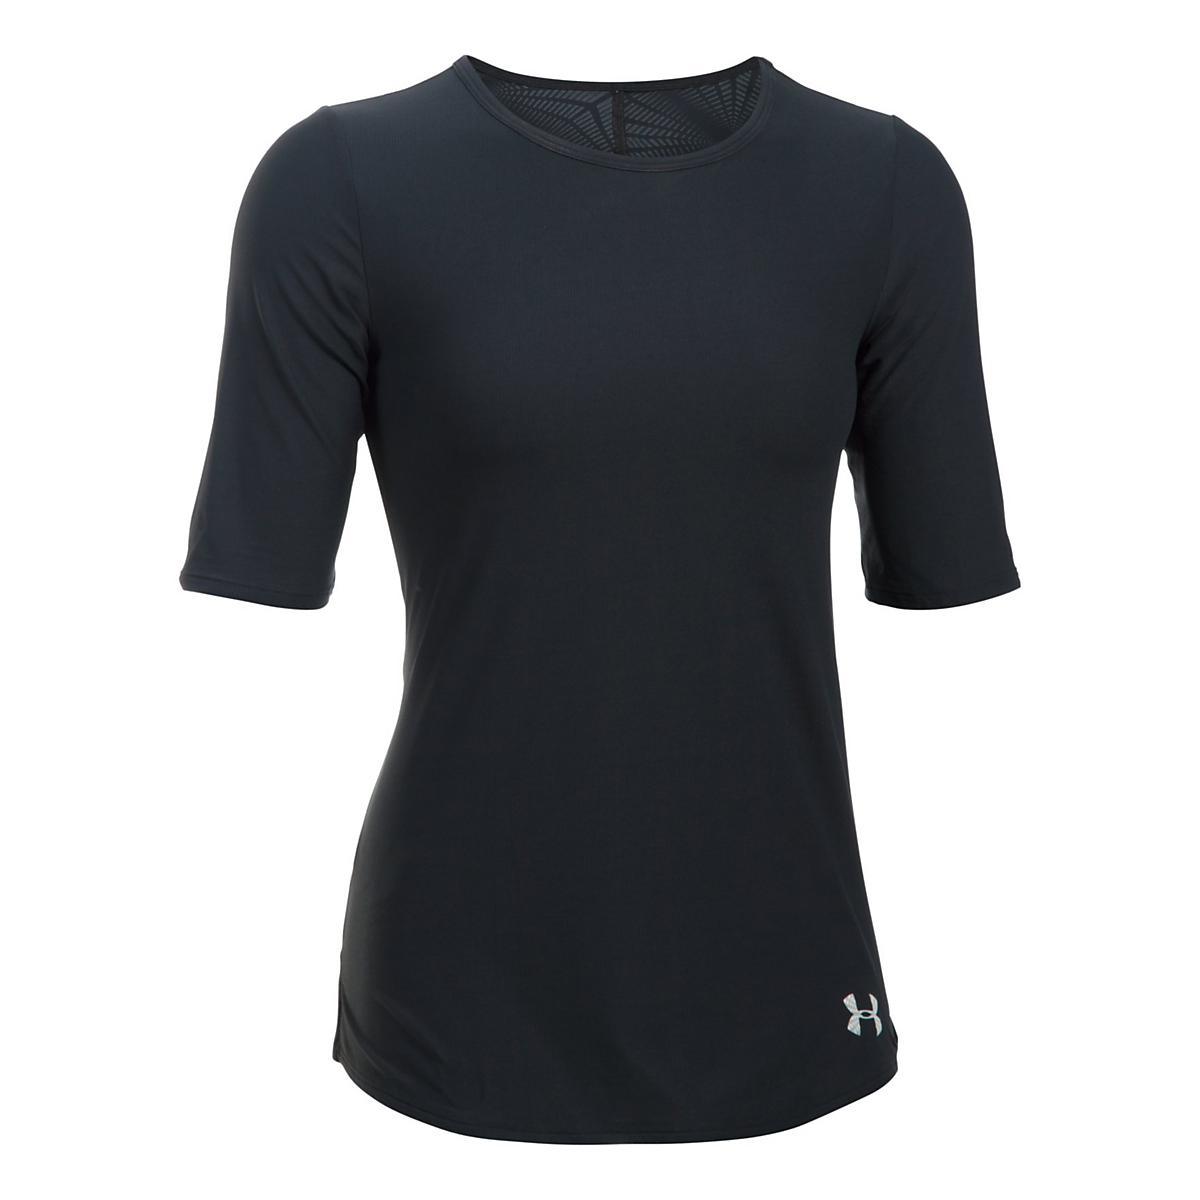 Women's Under Armour�Coolswitch Run Shortsleeve